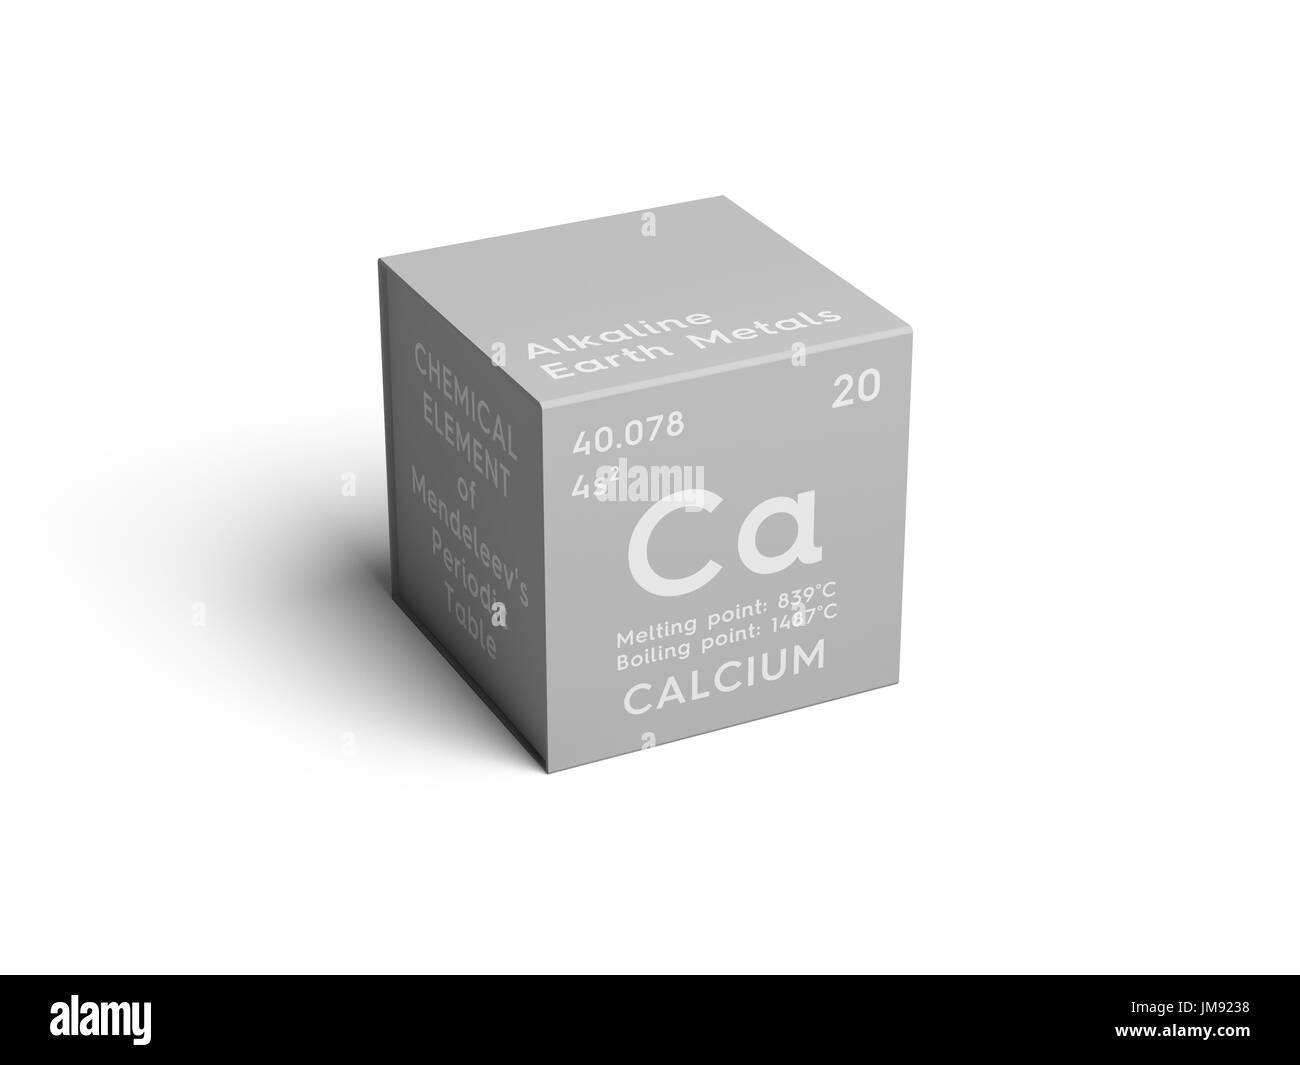 Calcium alkaline earth metals chemical element of mendeleevs alkaline earth metals chemical element of mendeleevs periodic table calcium in square urtaz Choice Image